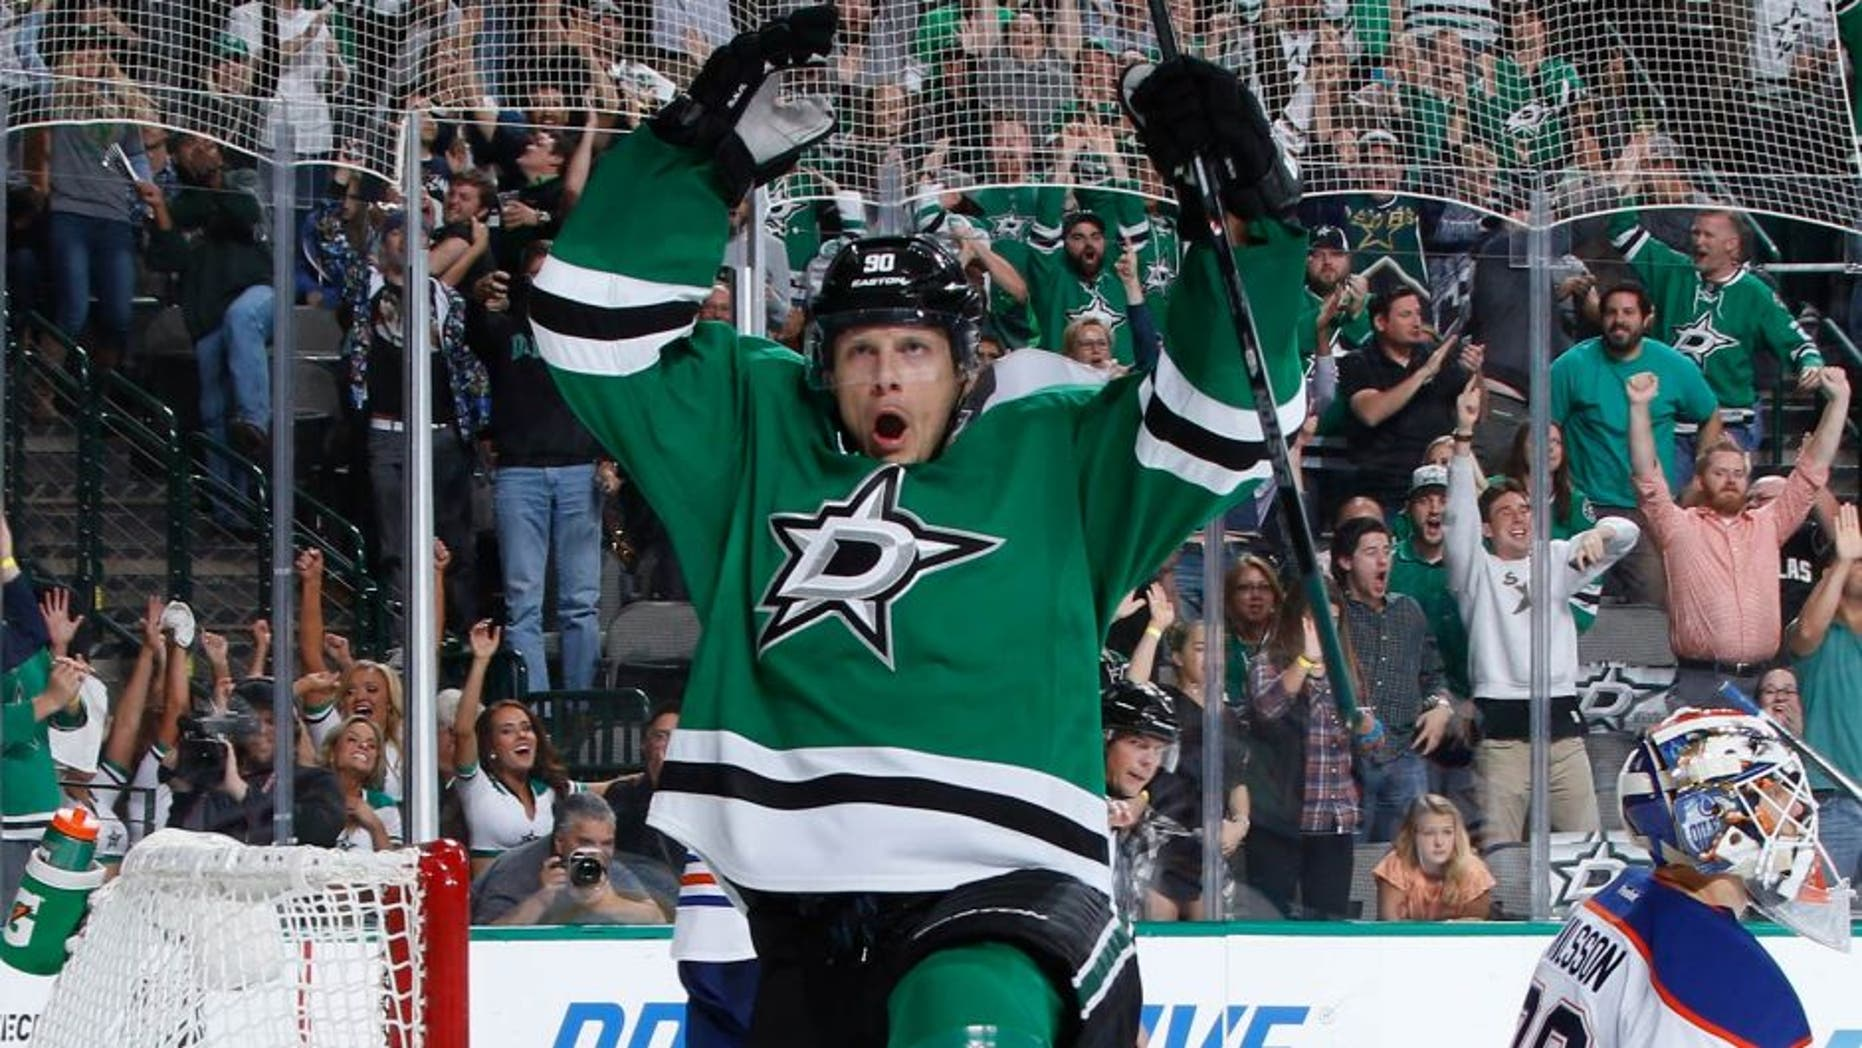 DALLAS, TX - OCTOBER 13: Jason Spezza #90 of the Dallas Stars scores one of his three goals on the night against the Edmonton Oilers at the American Airlines Center on October 13, 2015 in Dallas, Texas. (Photo by Glenn James/NHLI via Getty Images)